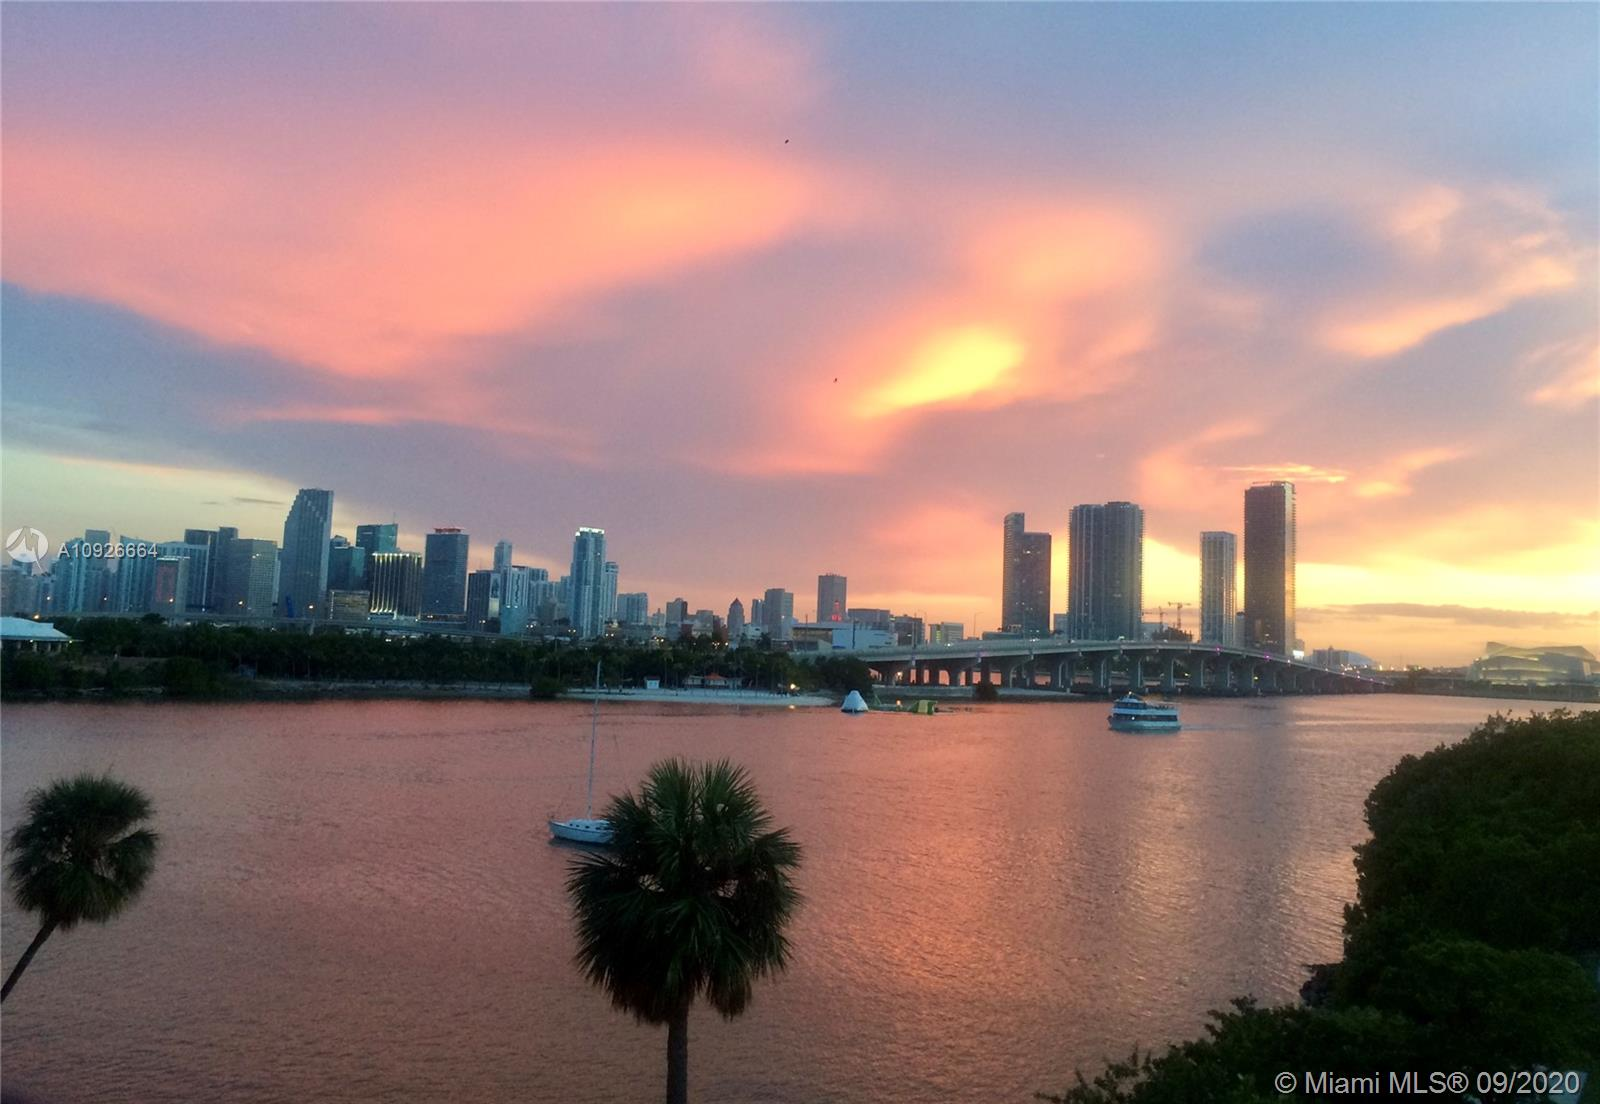 Unique two story corner unit with a million dollar view located in one of the most exclusive areas of Miami and Miami Beach! 9.5 'glass walls that open to huge balconies on each level. The master bedroom and bathroom are on the upper level. Beautiful view of downtown Miami. Unit is located on the water overlooking the beautiful dog park and intercoastal waterway. Hardwood floors downstairs and polished concrete floors upstairs in the bedroom. Lots of mirrors reflecting the incredible view. Stunning views and even the hallway of the Unit has floor to ceiling glass walls. Modern decor.